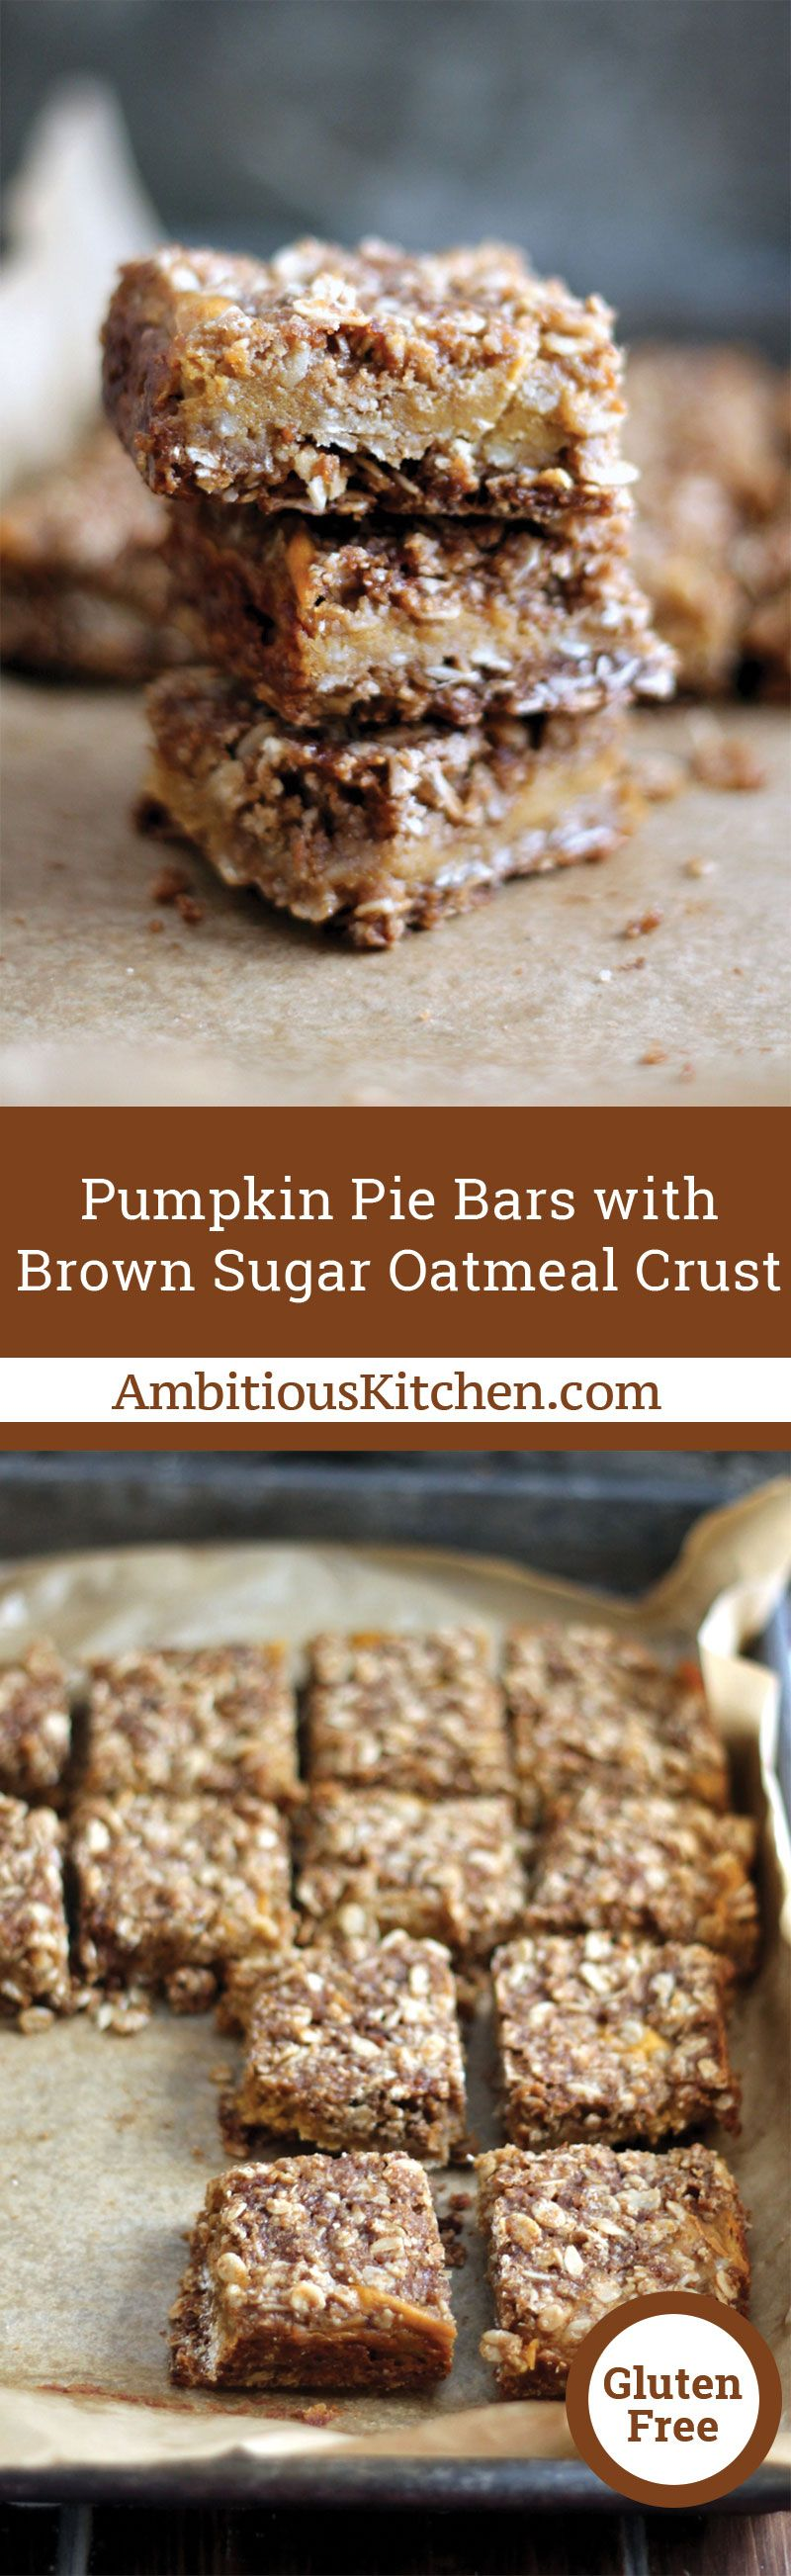 Easy Pumpkin Pie Bars With Oat Crust Are The Quick And Easy Way To Enjoy Pumpkin Pie They Take Only 15 Easy Pumpkin Pie Pumpkin Pie Bars Easy Pumpkin Dessert